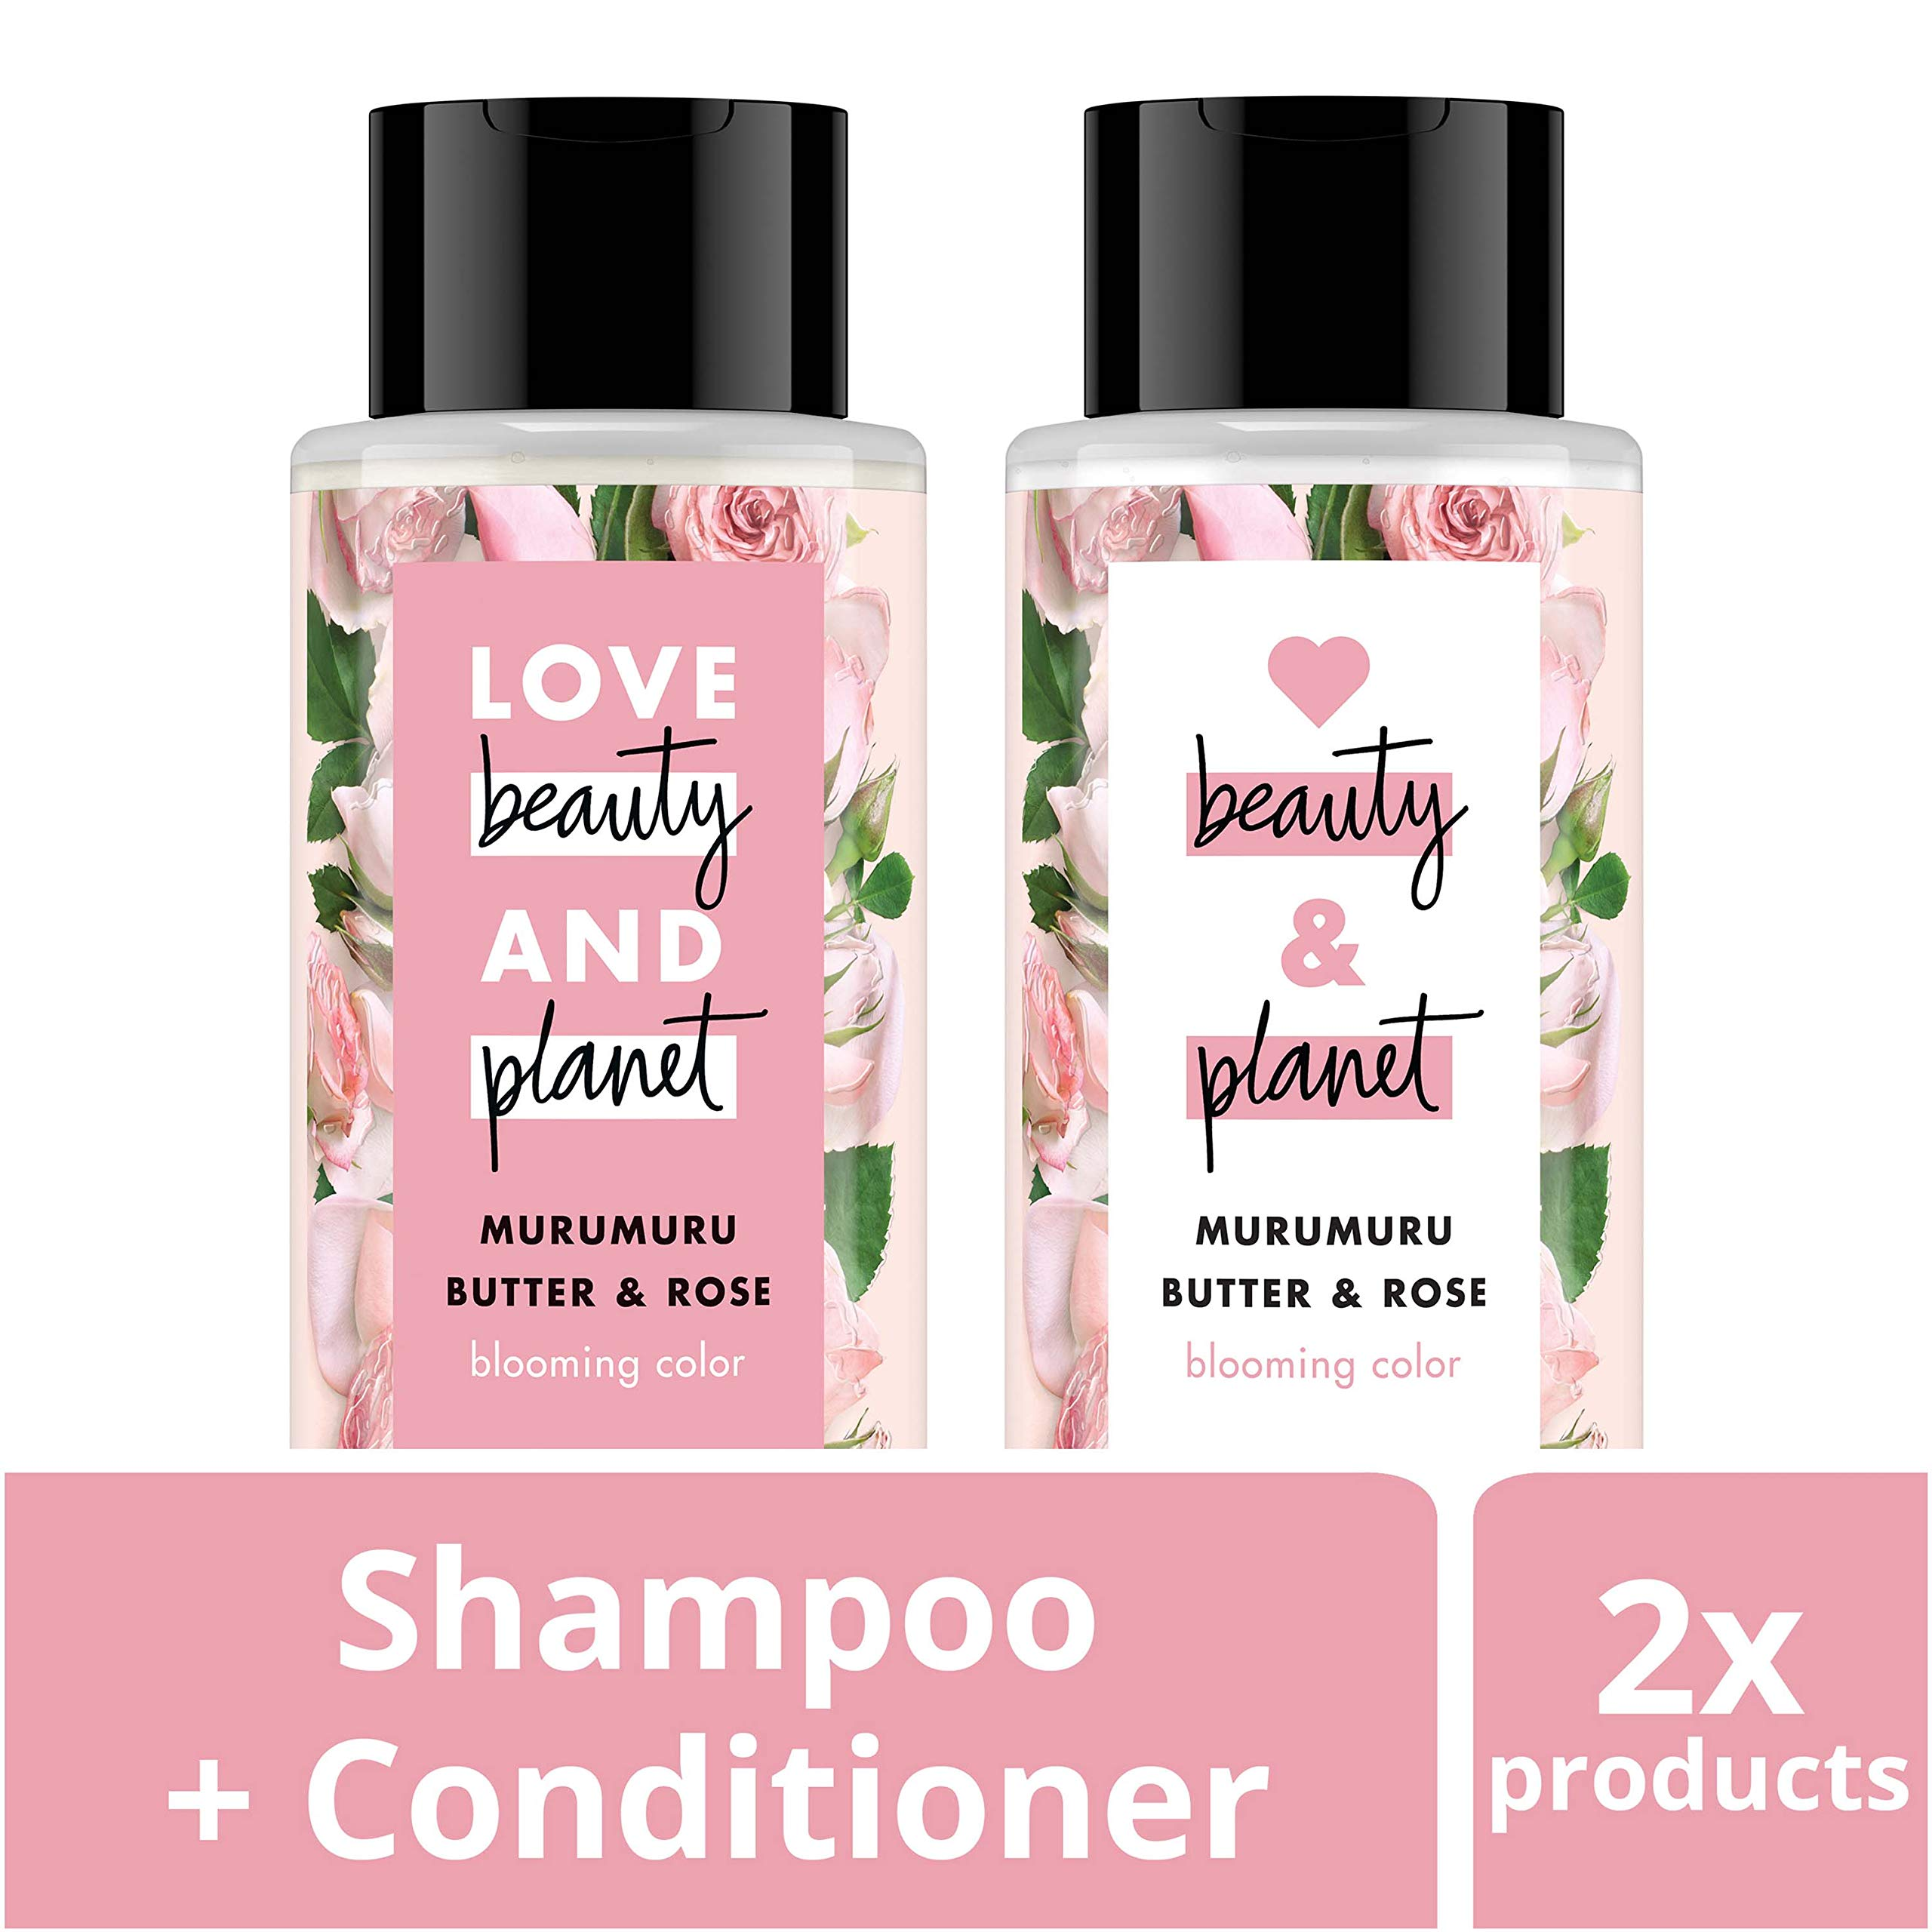 Love Beauty And Planet Rose Shampoo and Conditioner for Color Treated Hair, Silicone Free, Paraben Free and Vegan, 13.5 oz, 2 count by Love Beauty And Planet